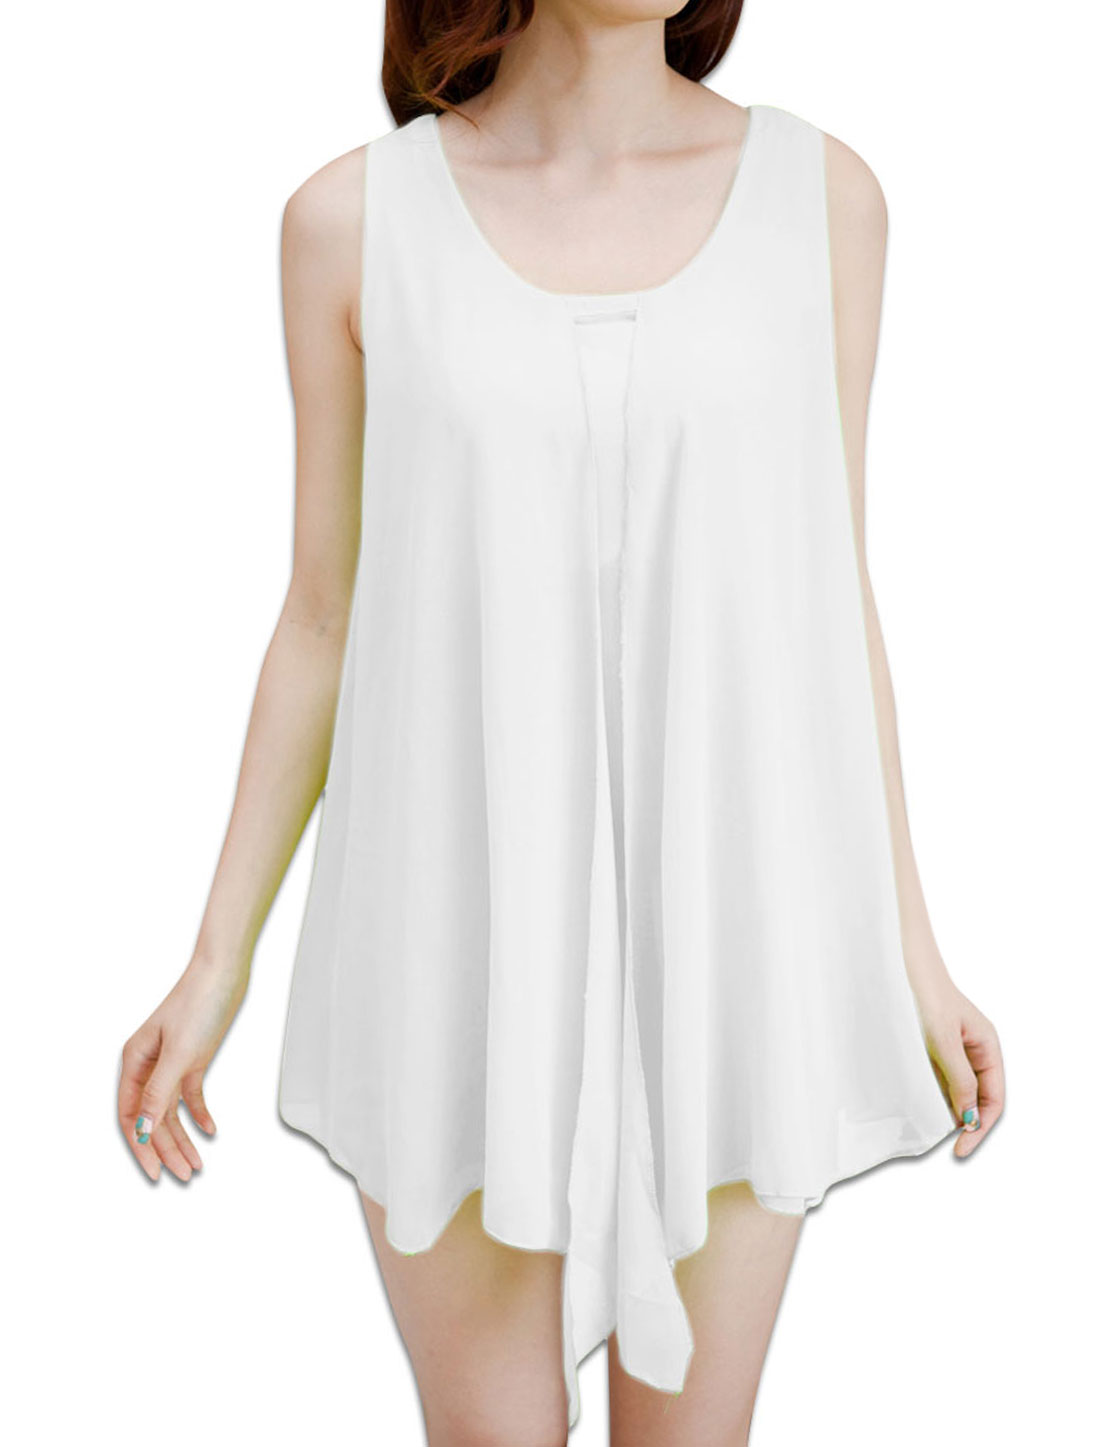 Women Softness Irregular Hem Sleeveless Tank Shirts White S